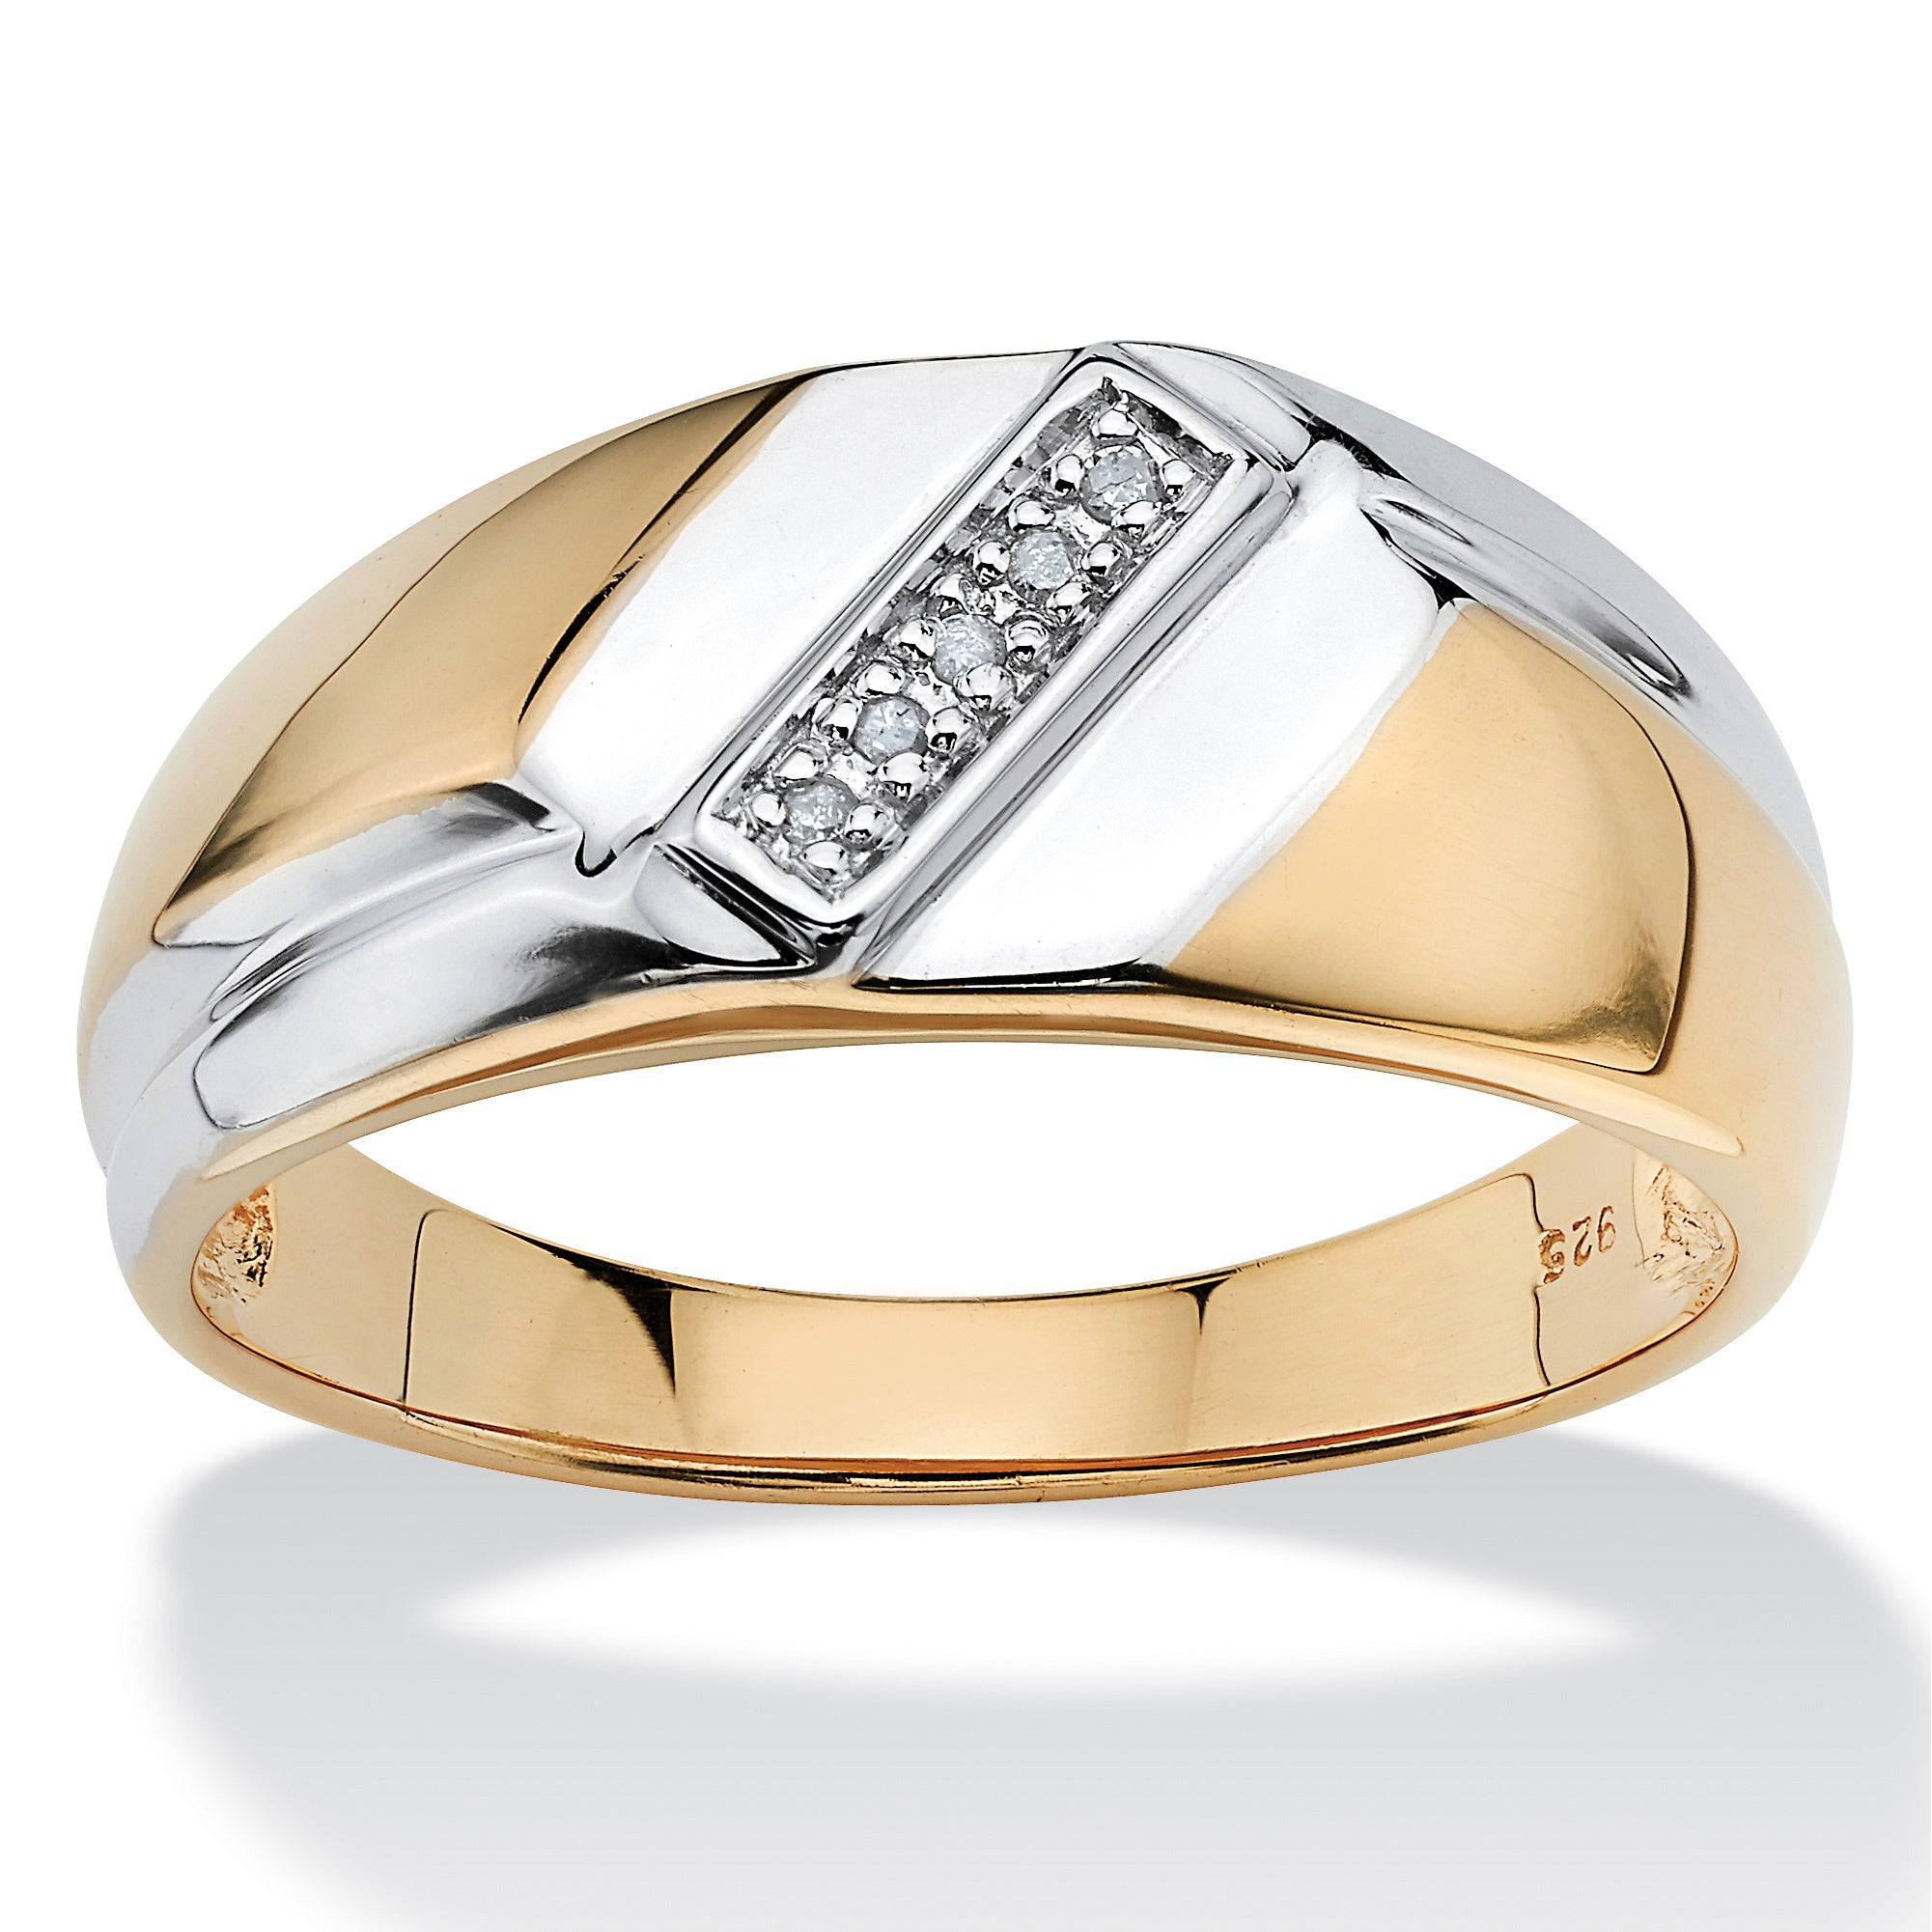 ring ladies gold product by engagement bands simon g enagement jewels tashne